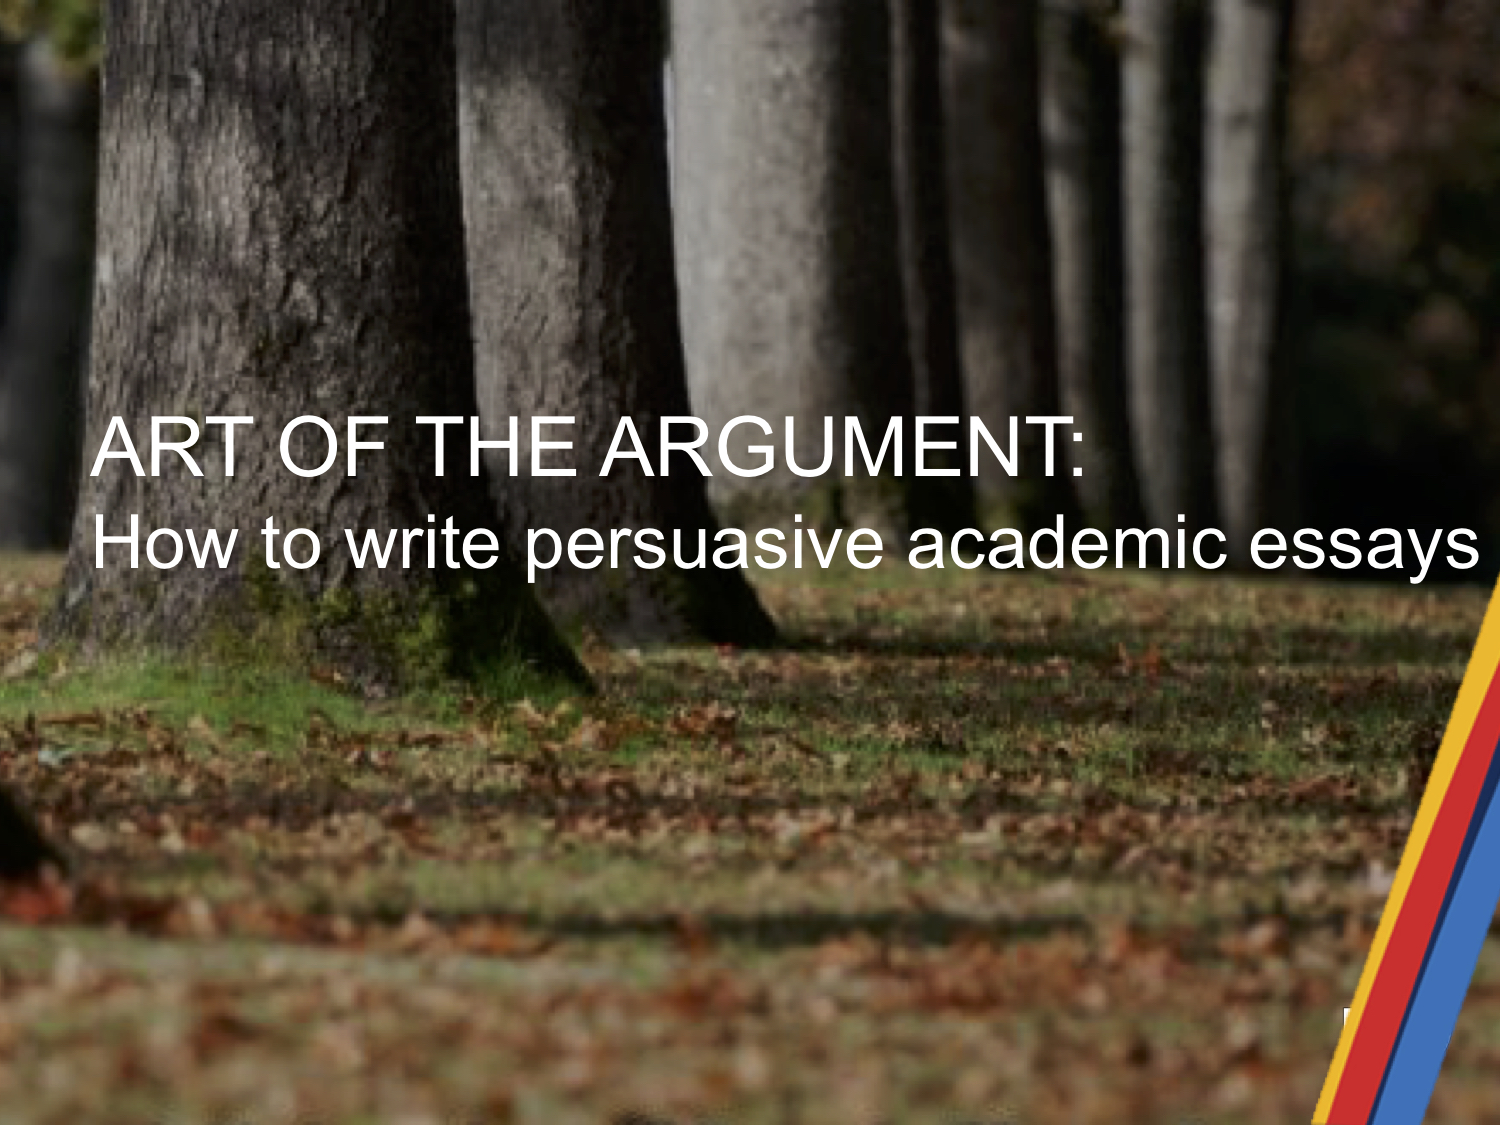 Art of the argument: How to write persuasive academic essays